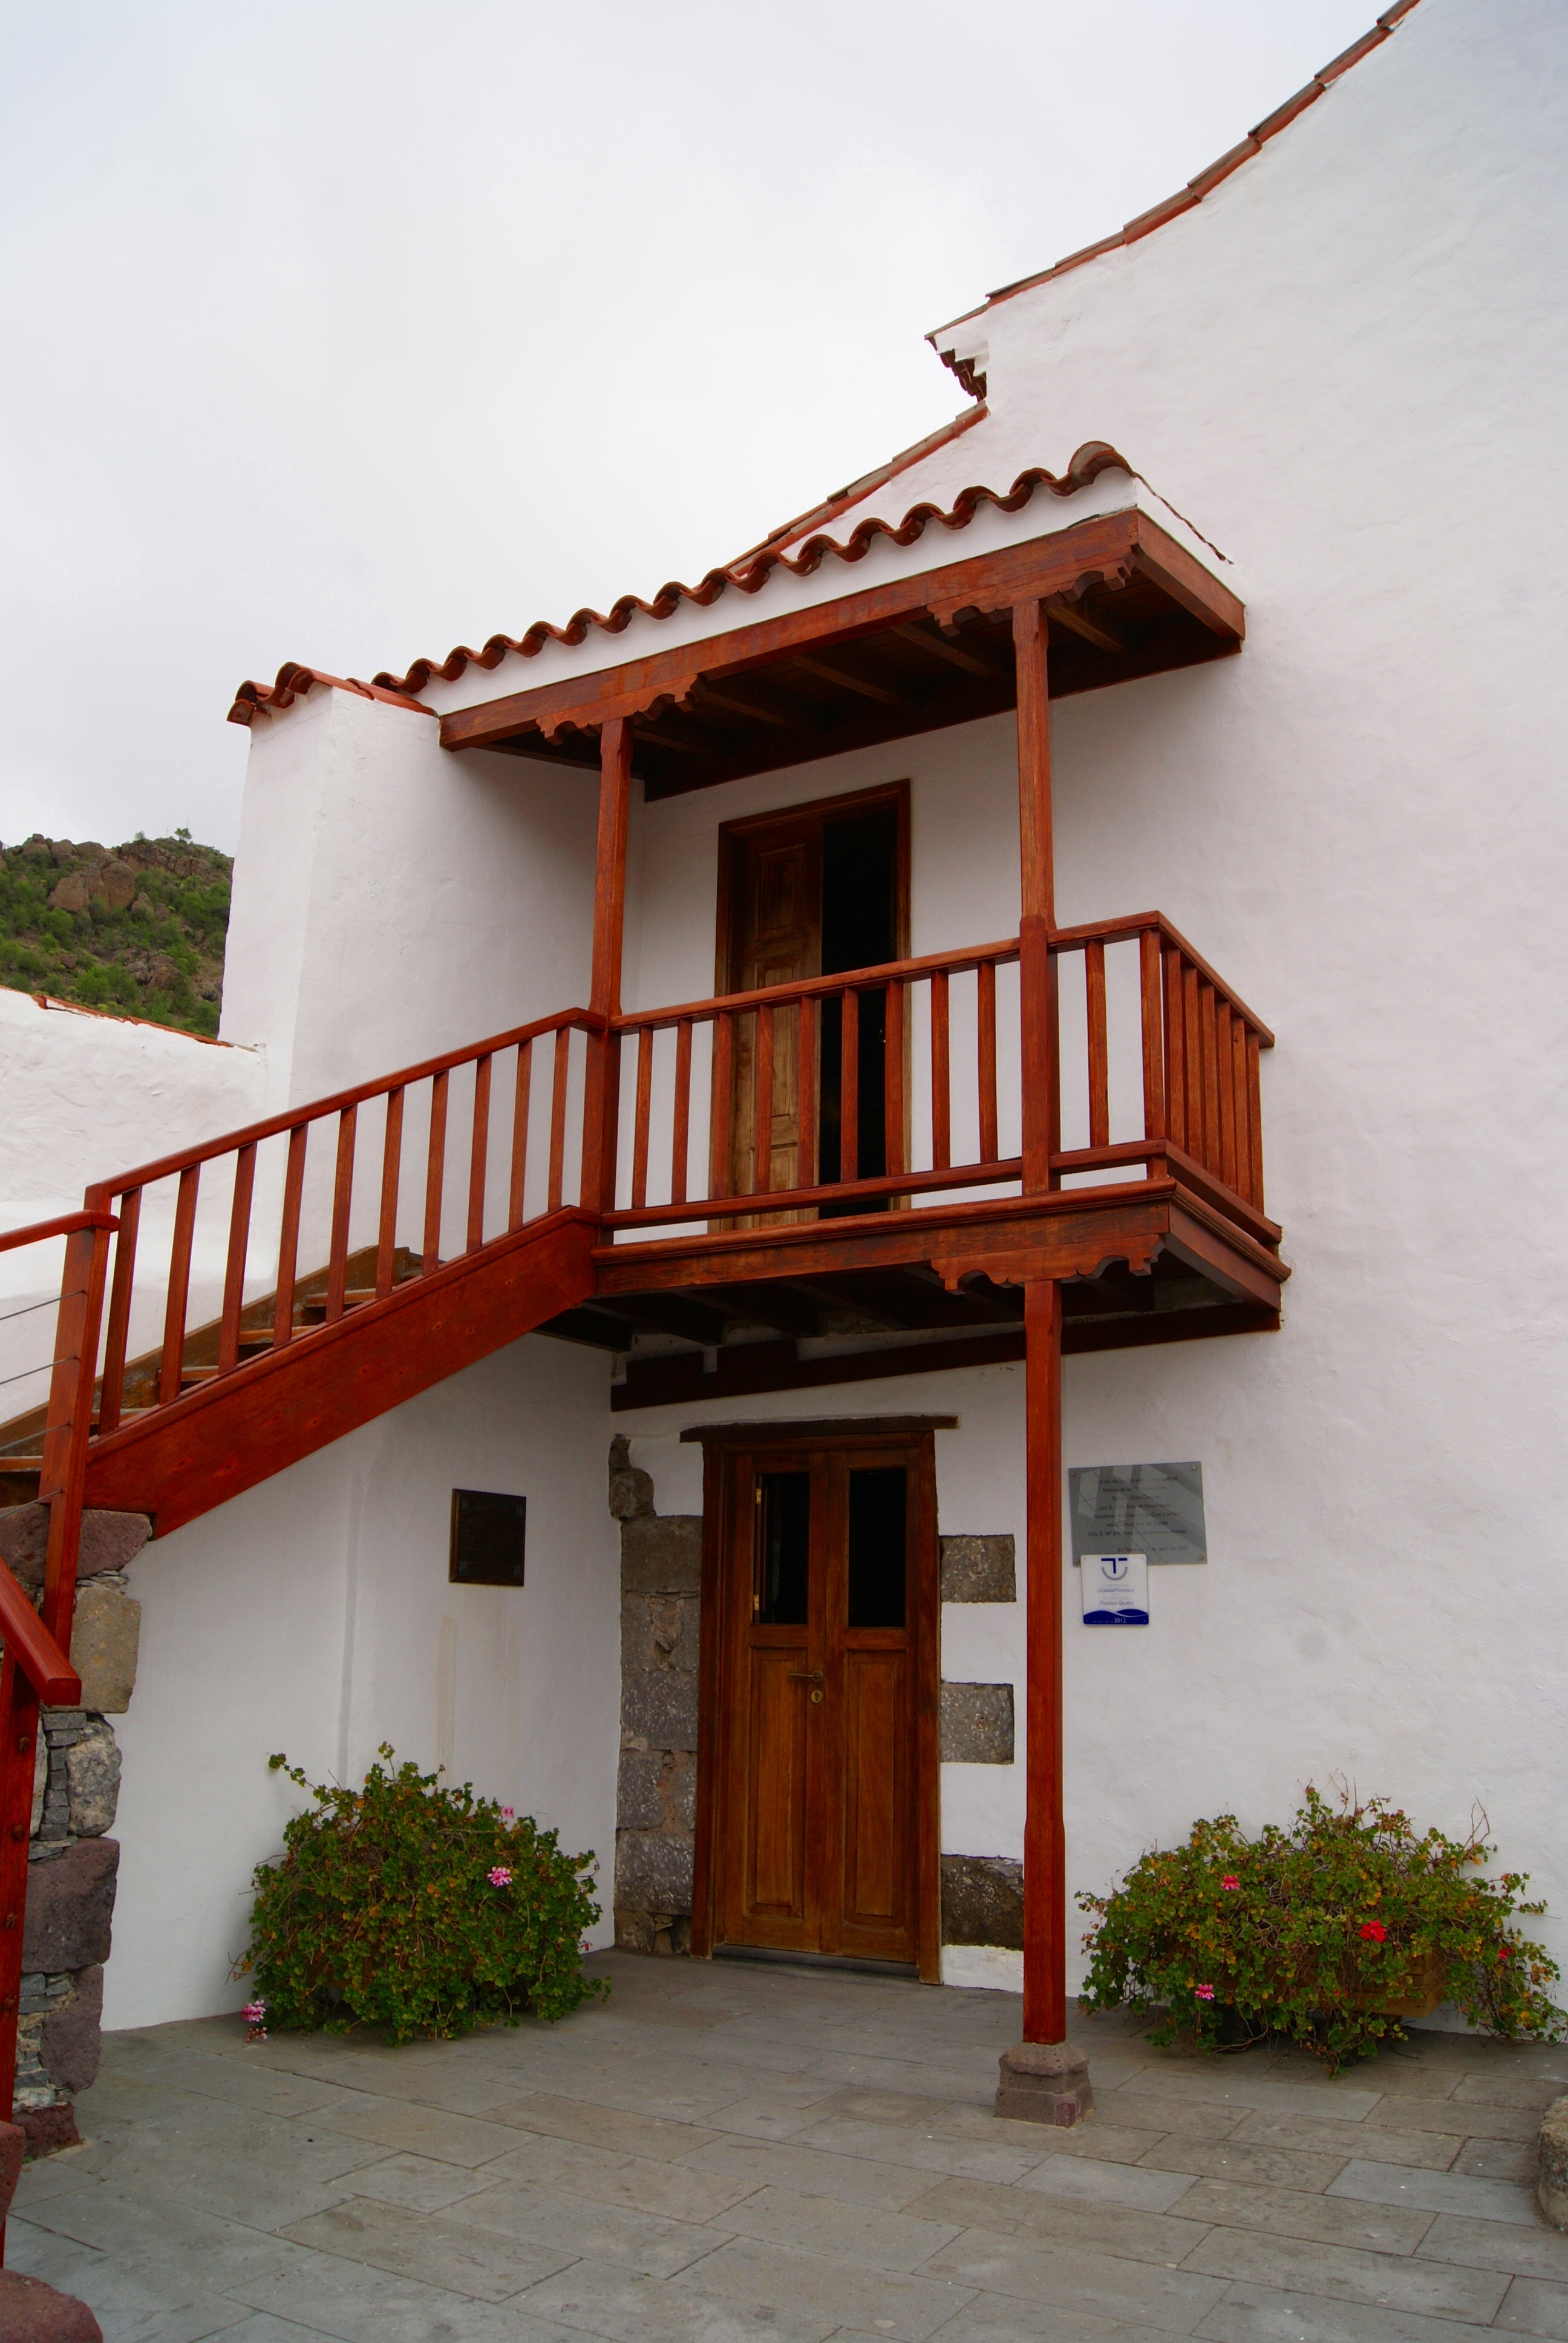 Palazzo Traditions Museum of Tejeda